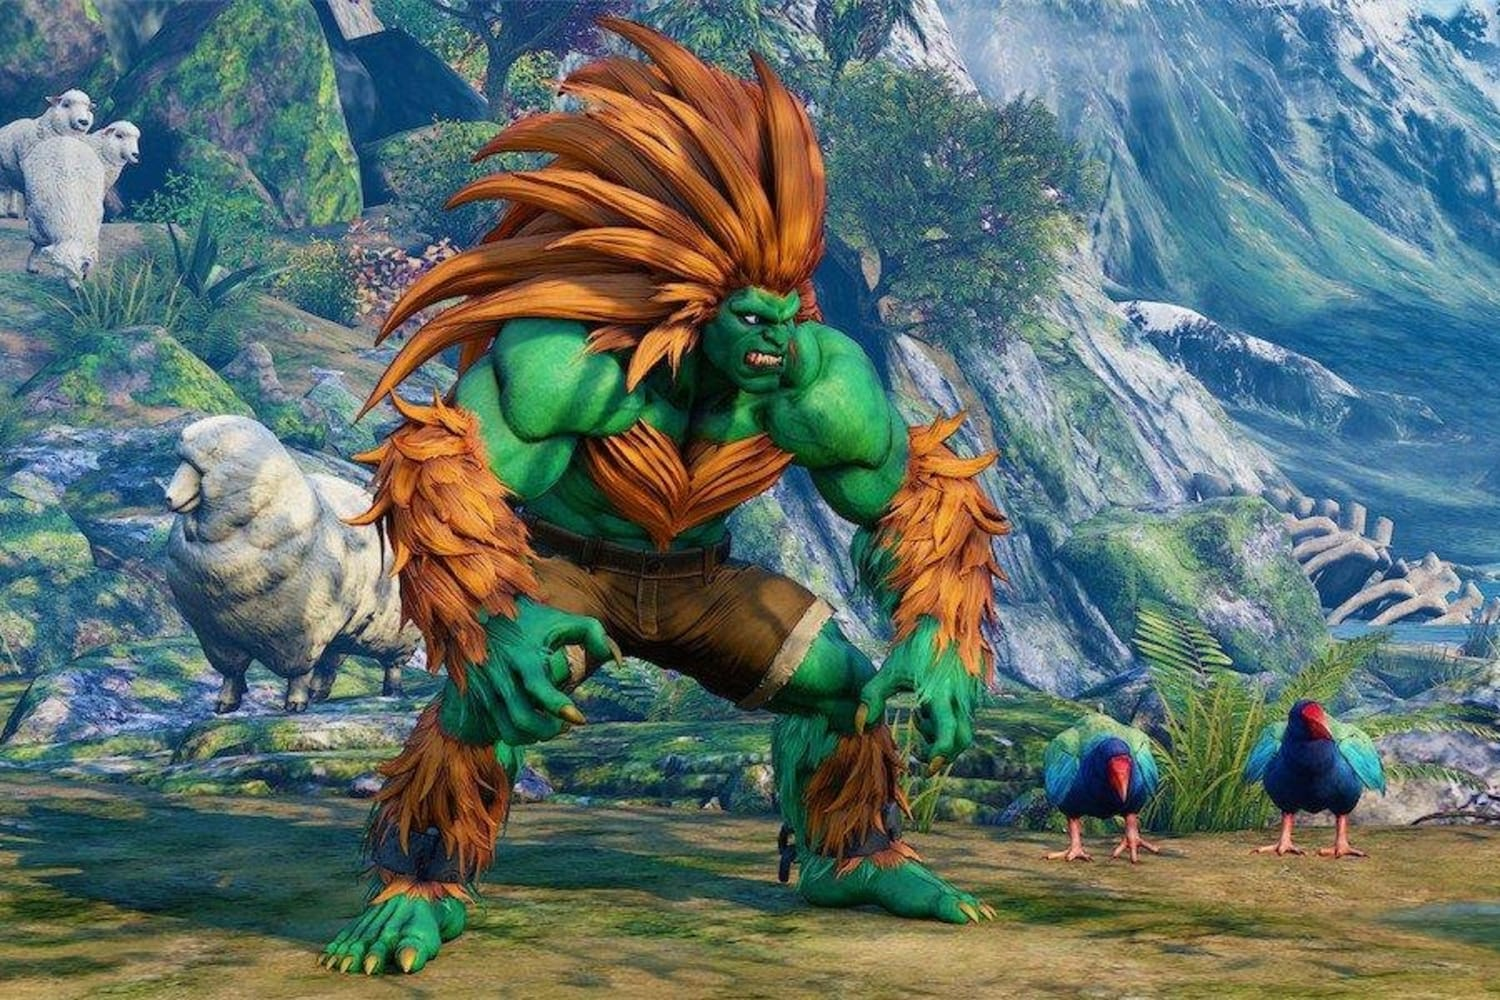 Street Fighter 5 Blanka Guide How To Master The Champ